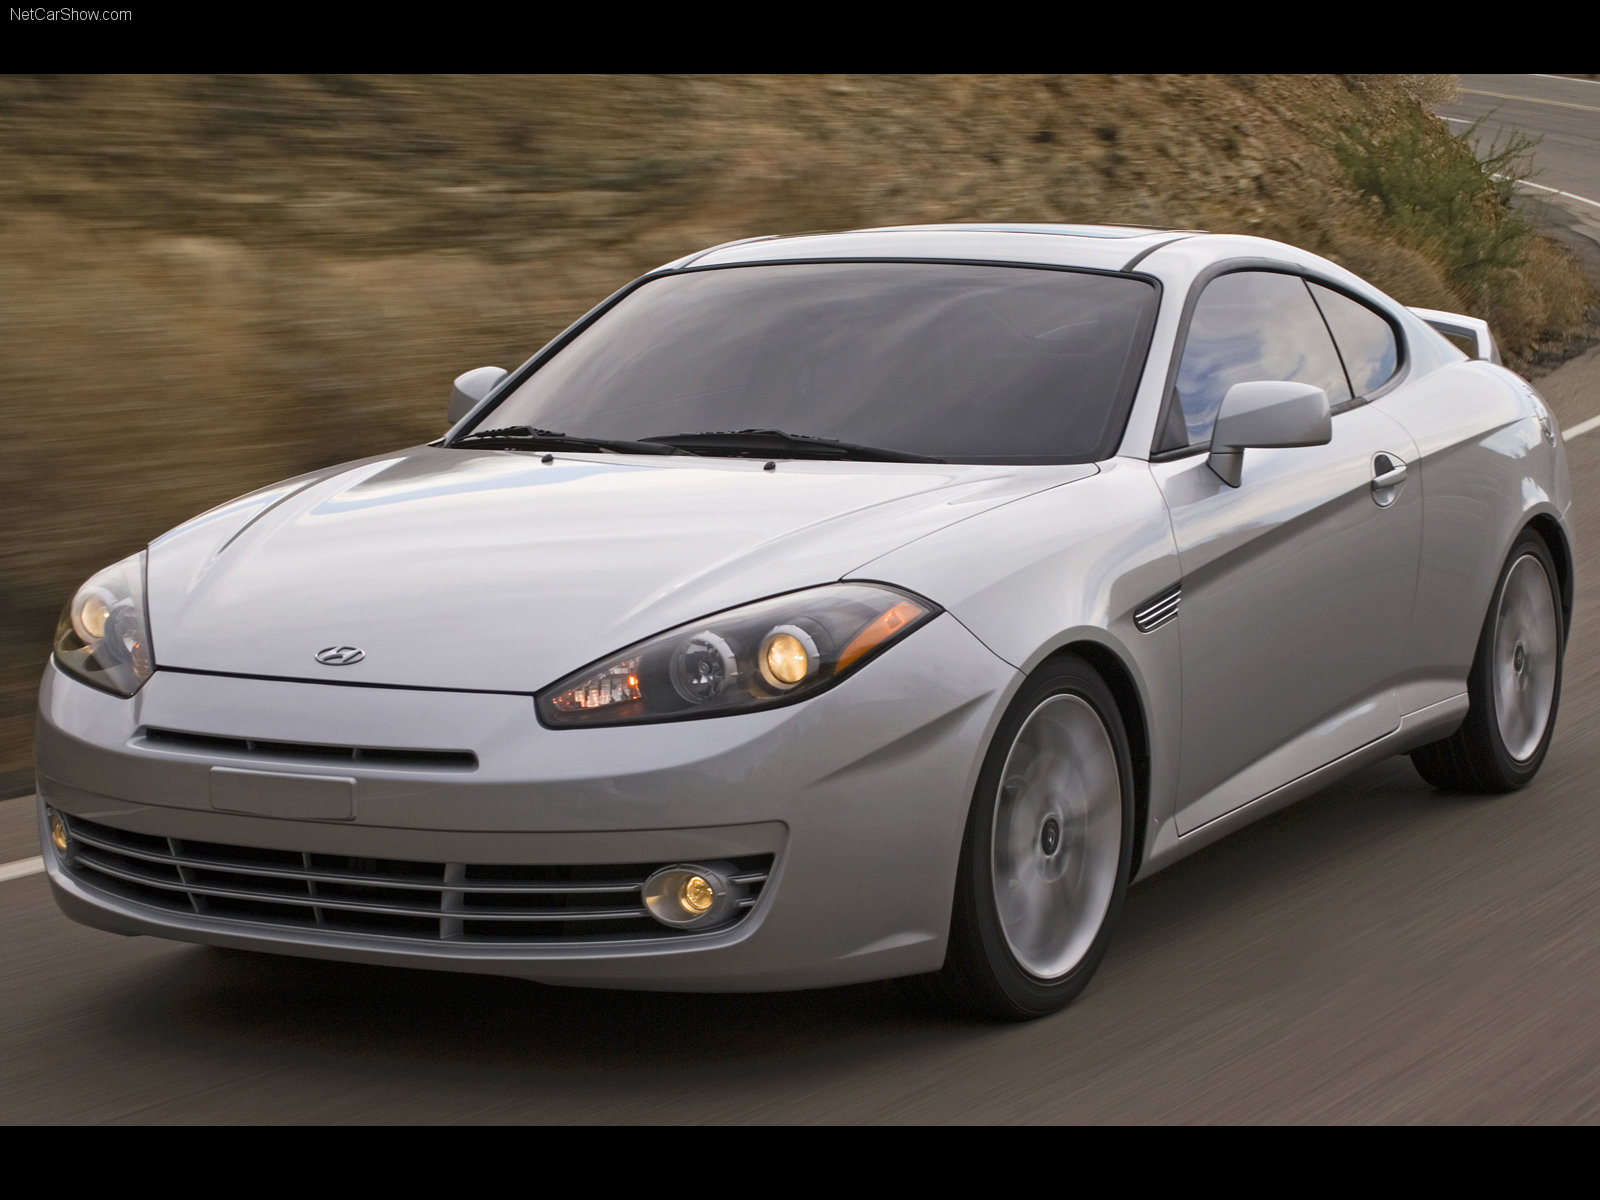 Hyundai Tiburon photo 38733